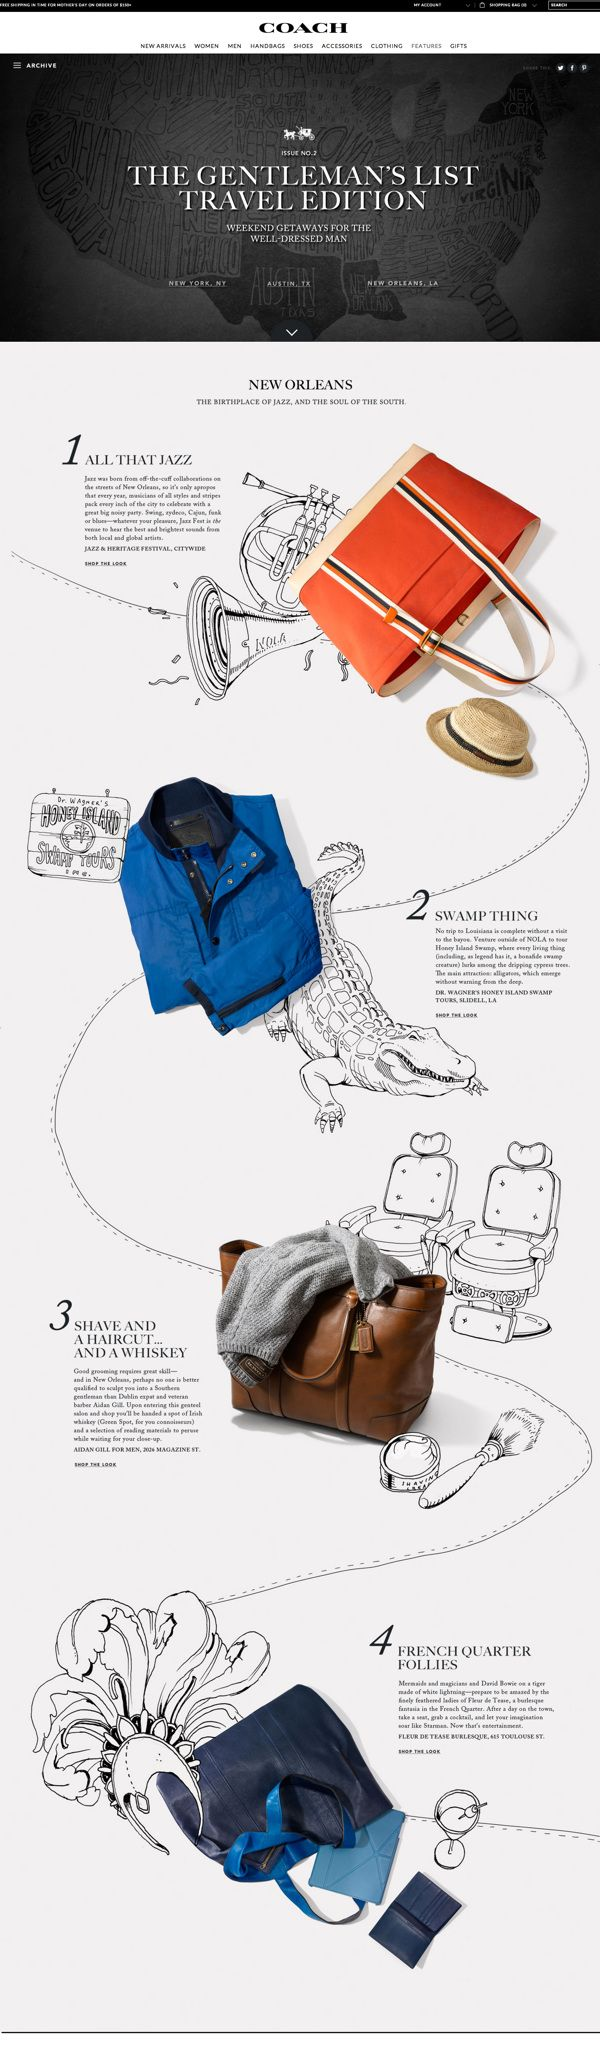 Coach Gentlemen's List by Kathrin Laser, via Behance